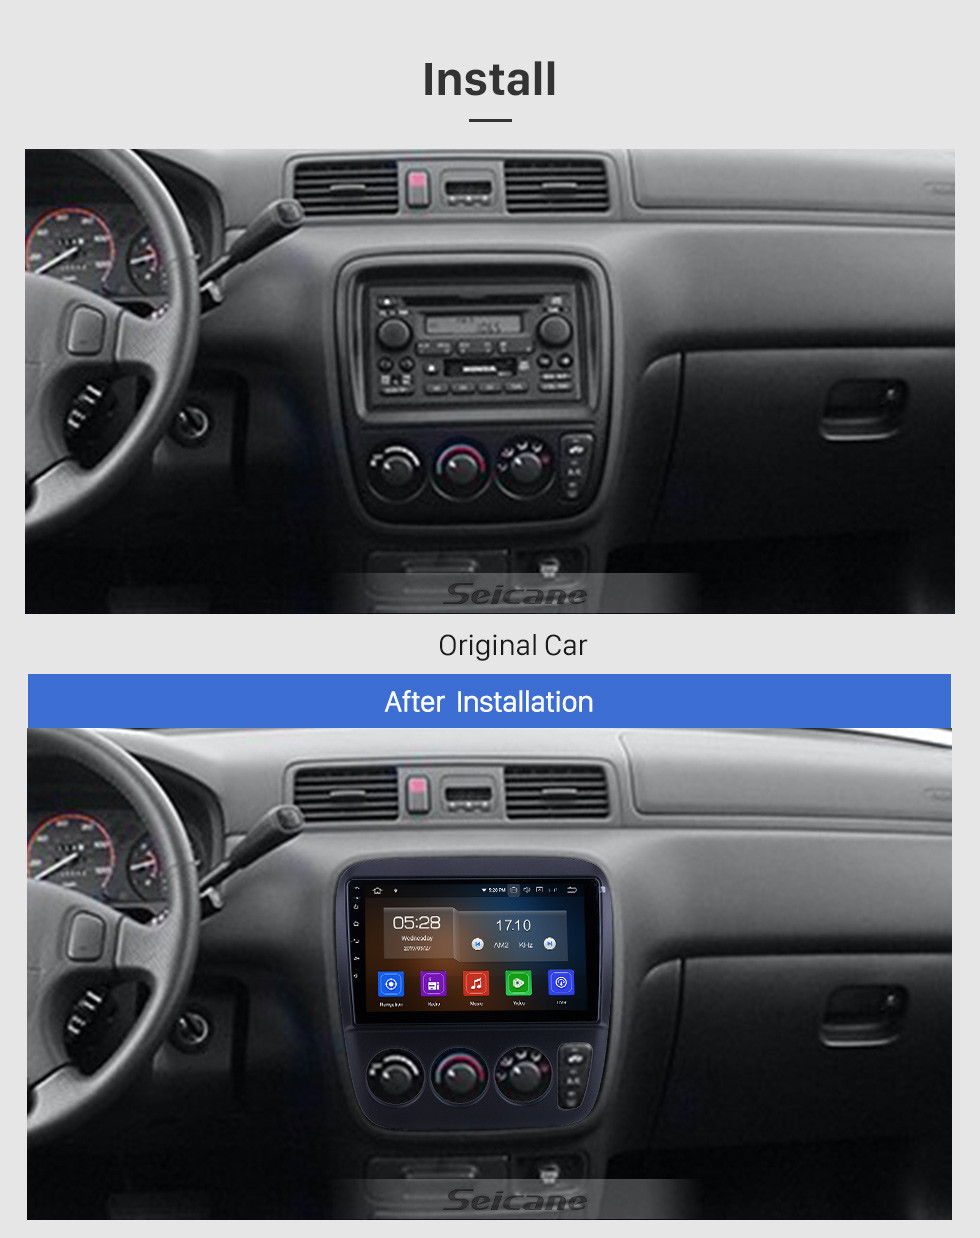 Seicane For 1998 1999 2000 Honda CR-V Performa RHD Radio 9 inch Android 10.0 HD Touchscreen Bluetooth with GPS Navigation System Carplay support 1080P